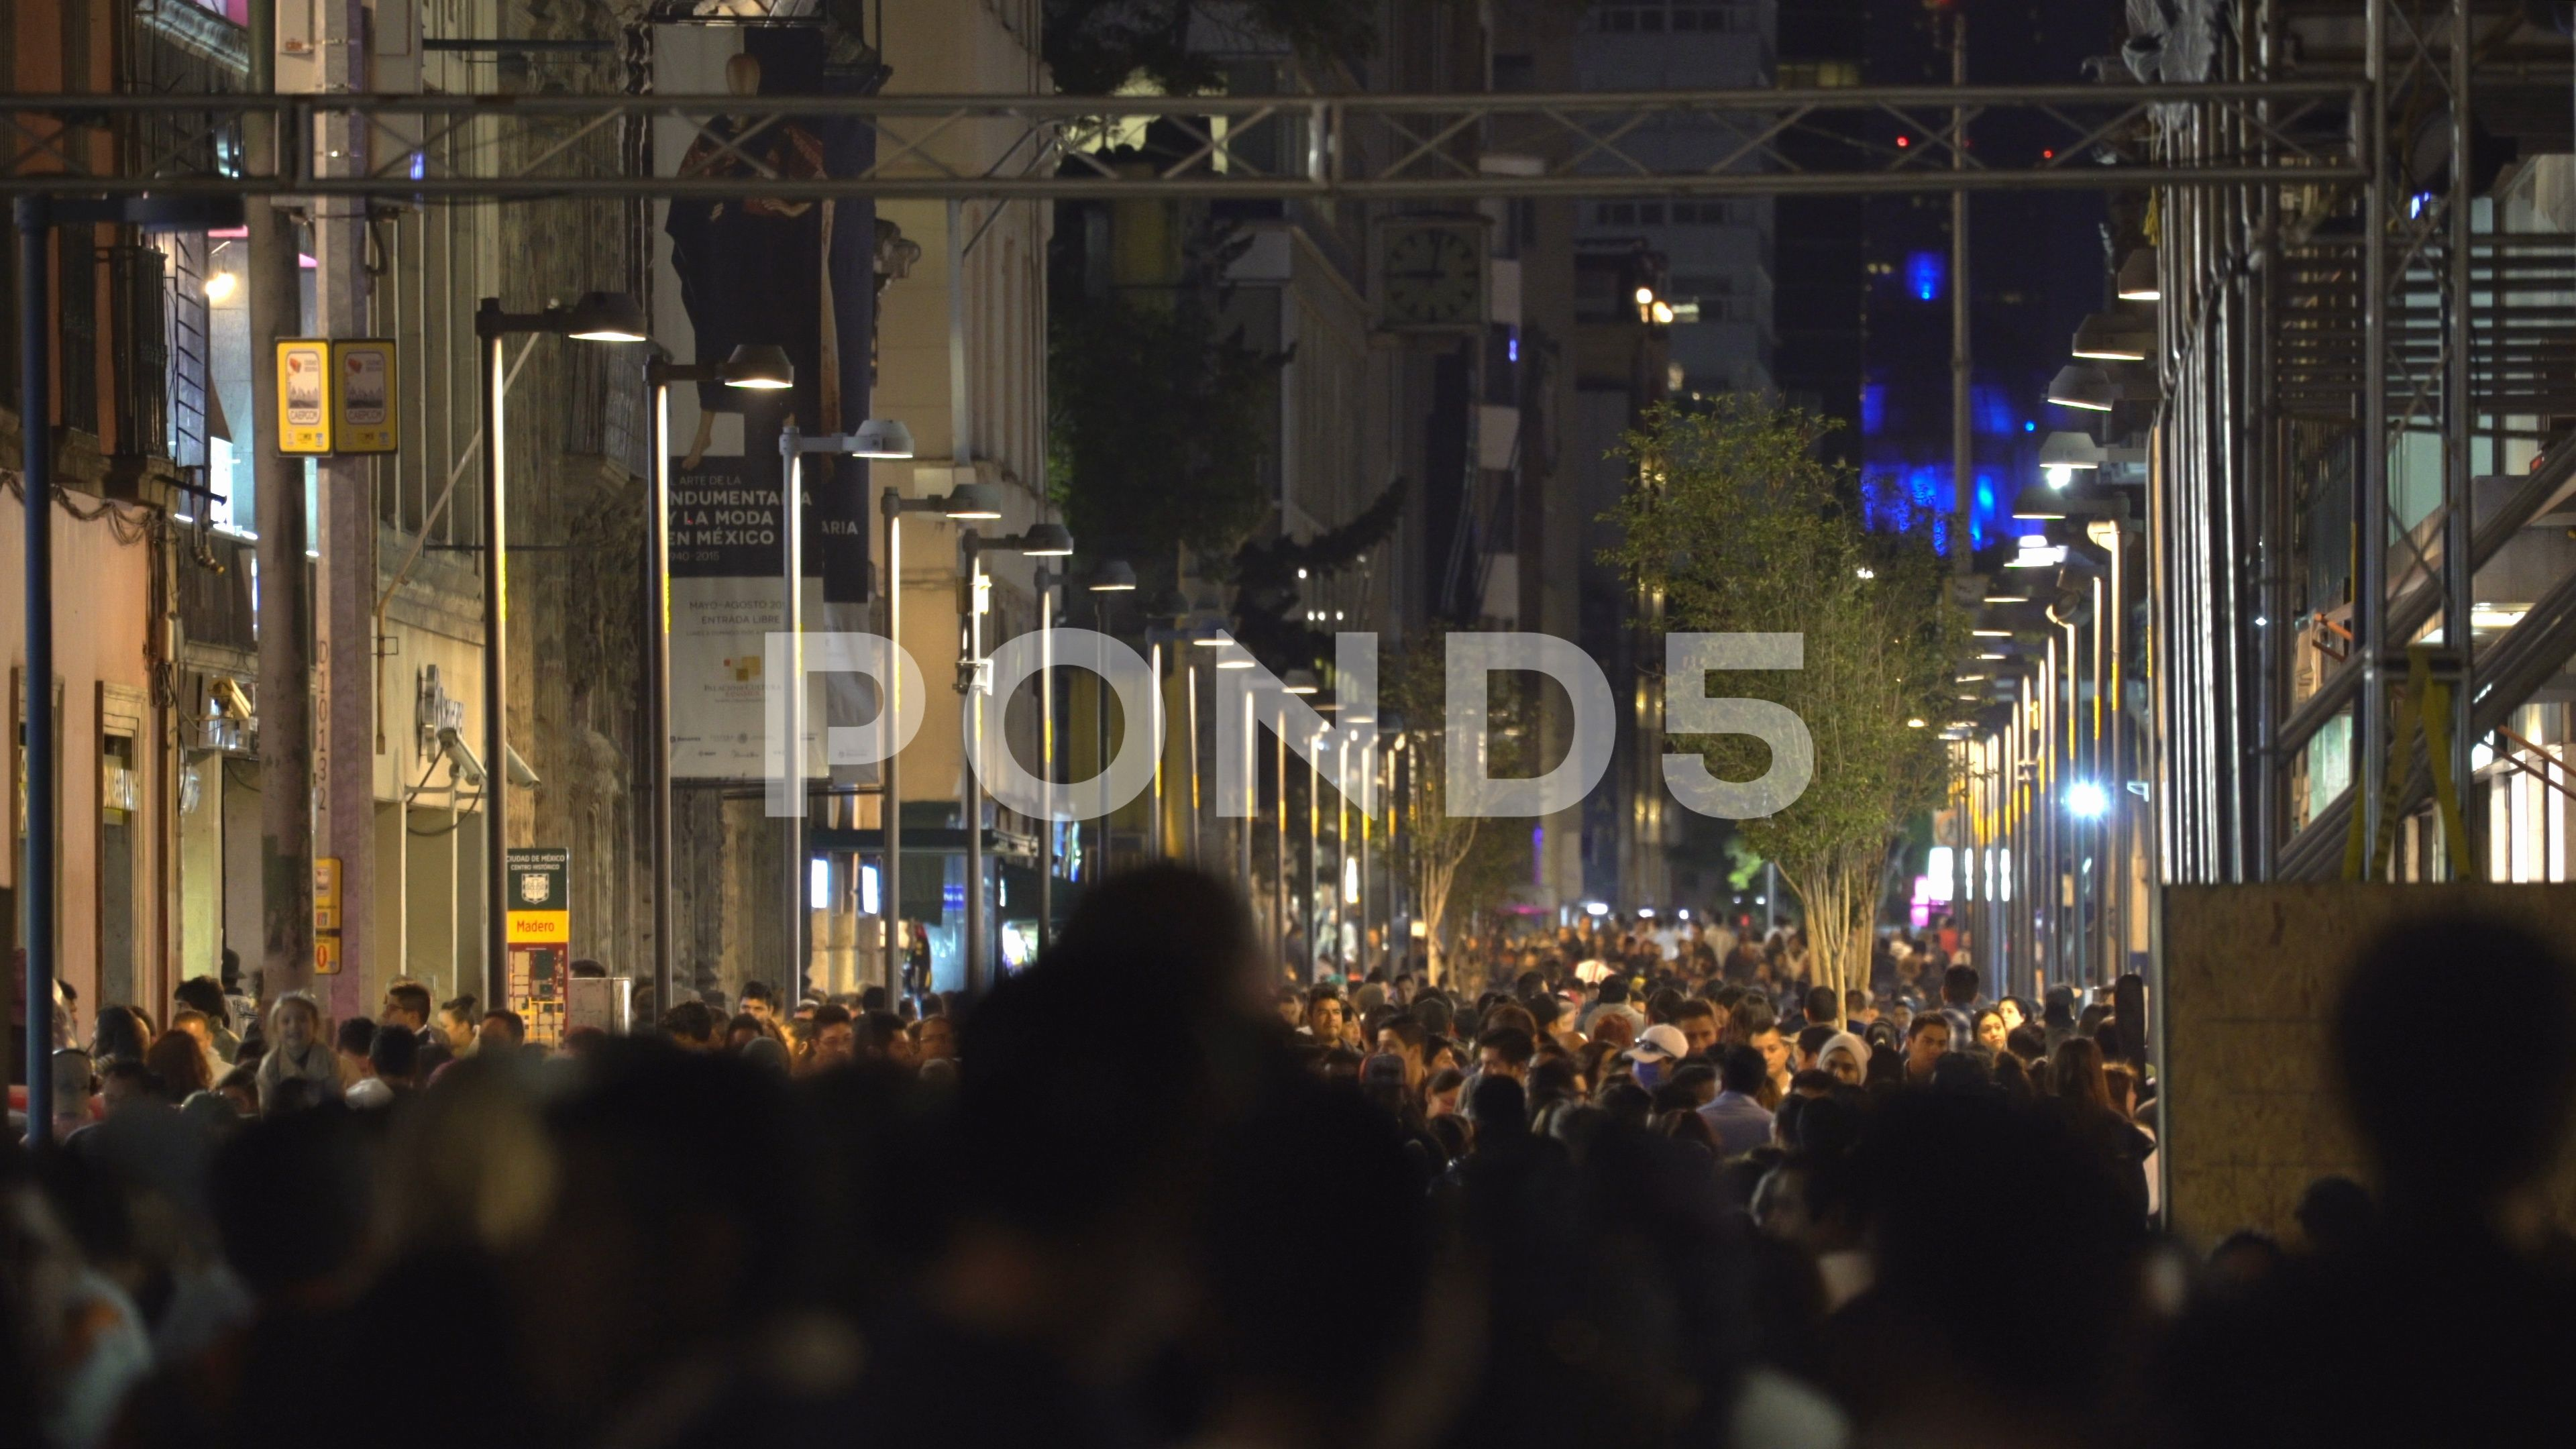 Mexico City Downtown Crowd Of People Walking On Street At Night Stock Footage Crowd People Downtown Mexico Downtown Mexico City Walking Street